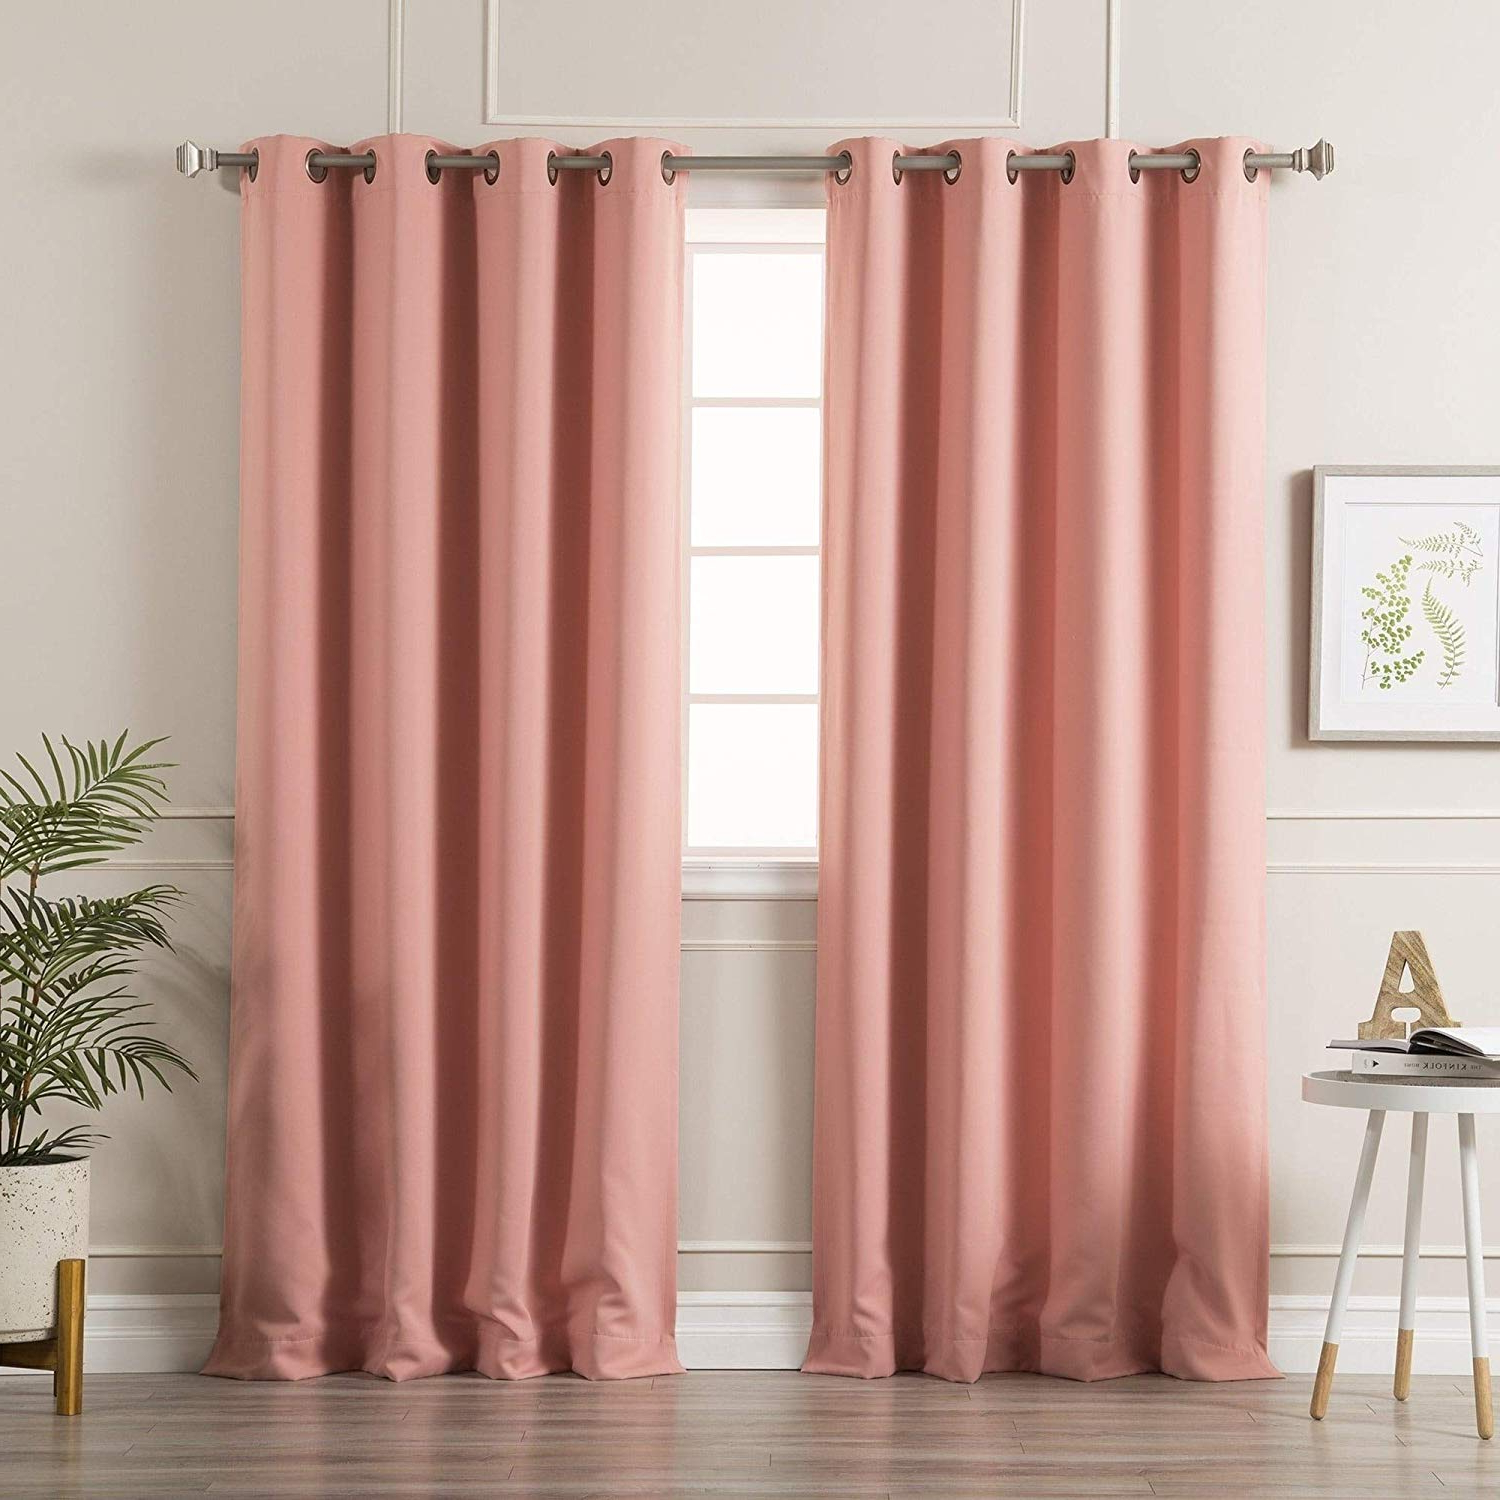 Well Liked Thermal Insulated Blackout Grommet Top Curtain Panel Pairs Throughout Amazon: Aurora Home Thermal Insulated Blackout Grommet (View 19 of 20)